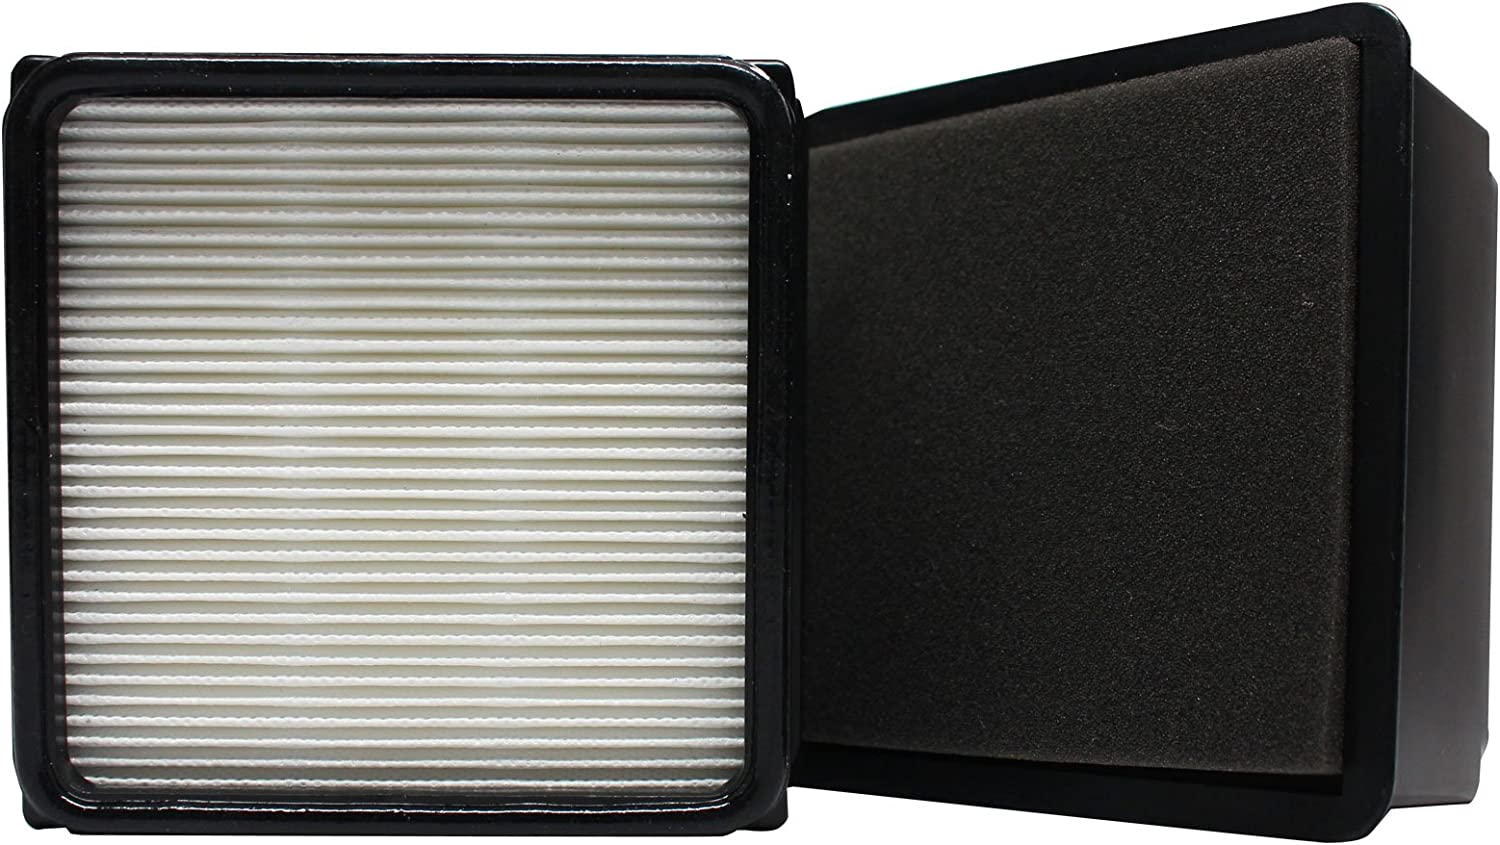 2-pack Replacement F66 Filter 304708001 for Dirt Devil - Compatible with Dirt Devil UD70105, Dirt Devil F66, Dirt Devil UD70100, Dirt Devil UD70220, Dirt Devil F59, Dirt Devil UD70120, Dirt Devil UD70110, Dirt Devil UD70107, Dirt Devil UD70105B